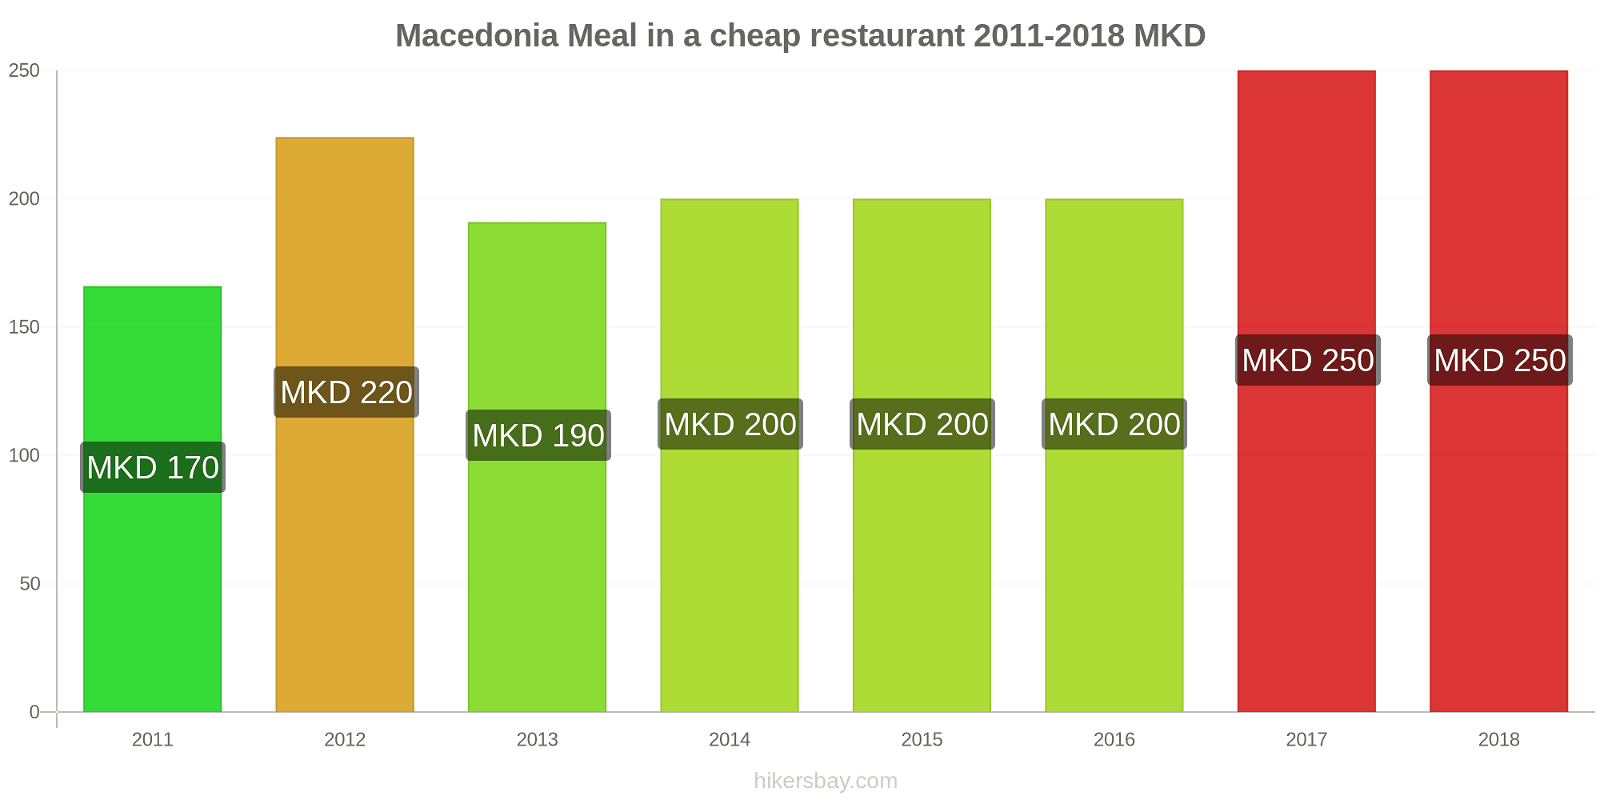 Macedonia price changes Meal in a cheap restaurant hikersbay.com